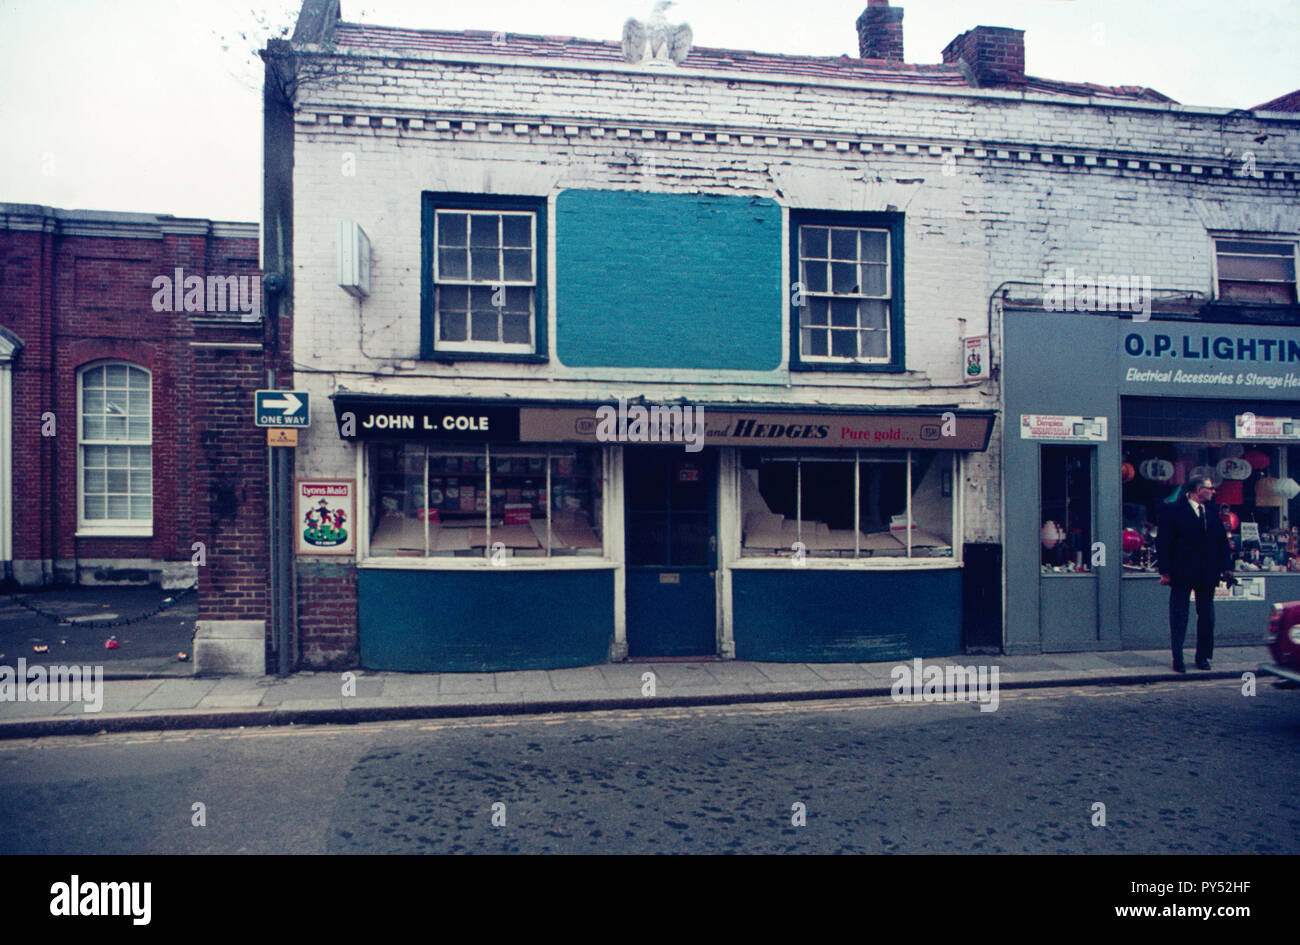 Traditional sweet shop in Cosham High Street, 1975 on a Sunday as the covered window displays show Stock Photo